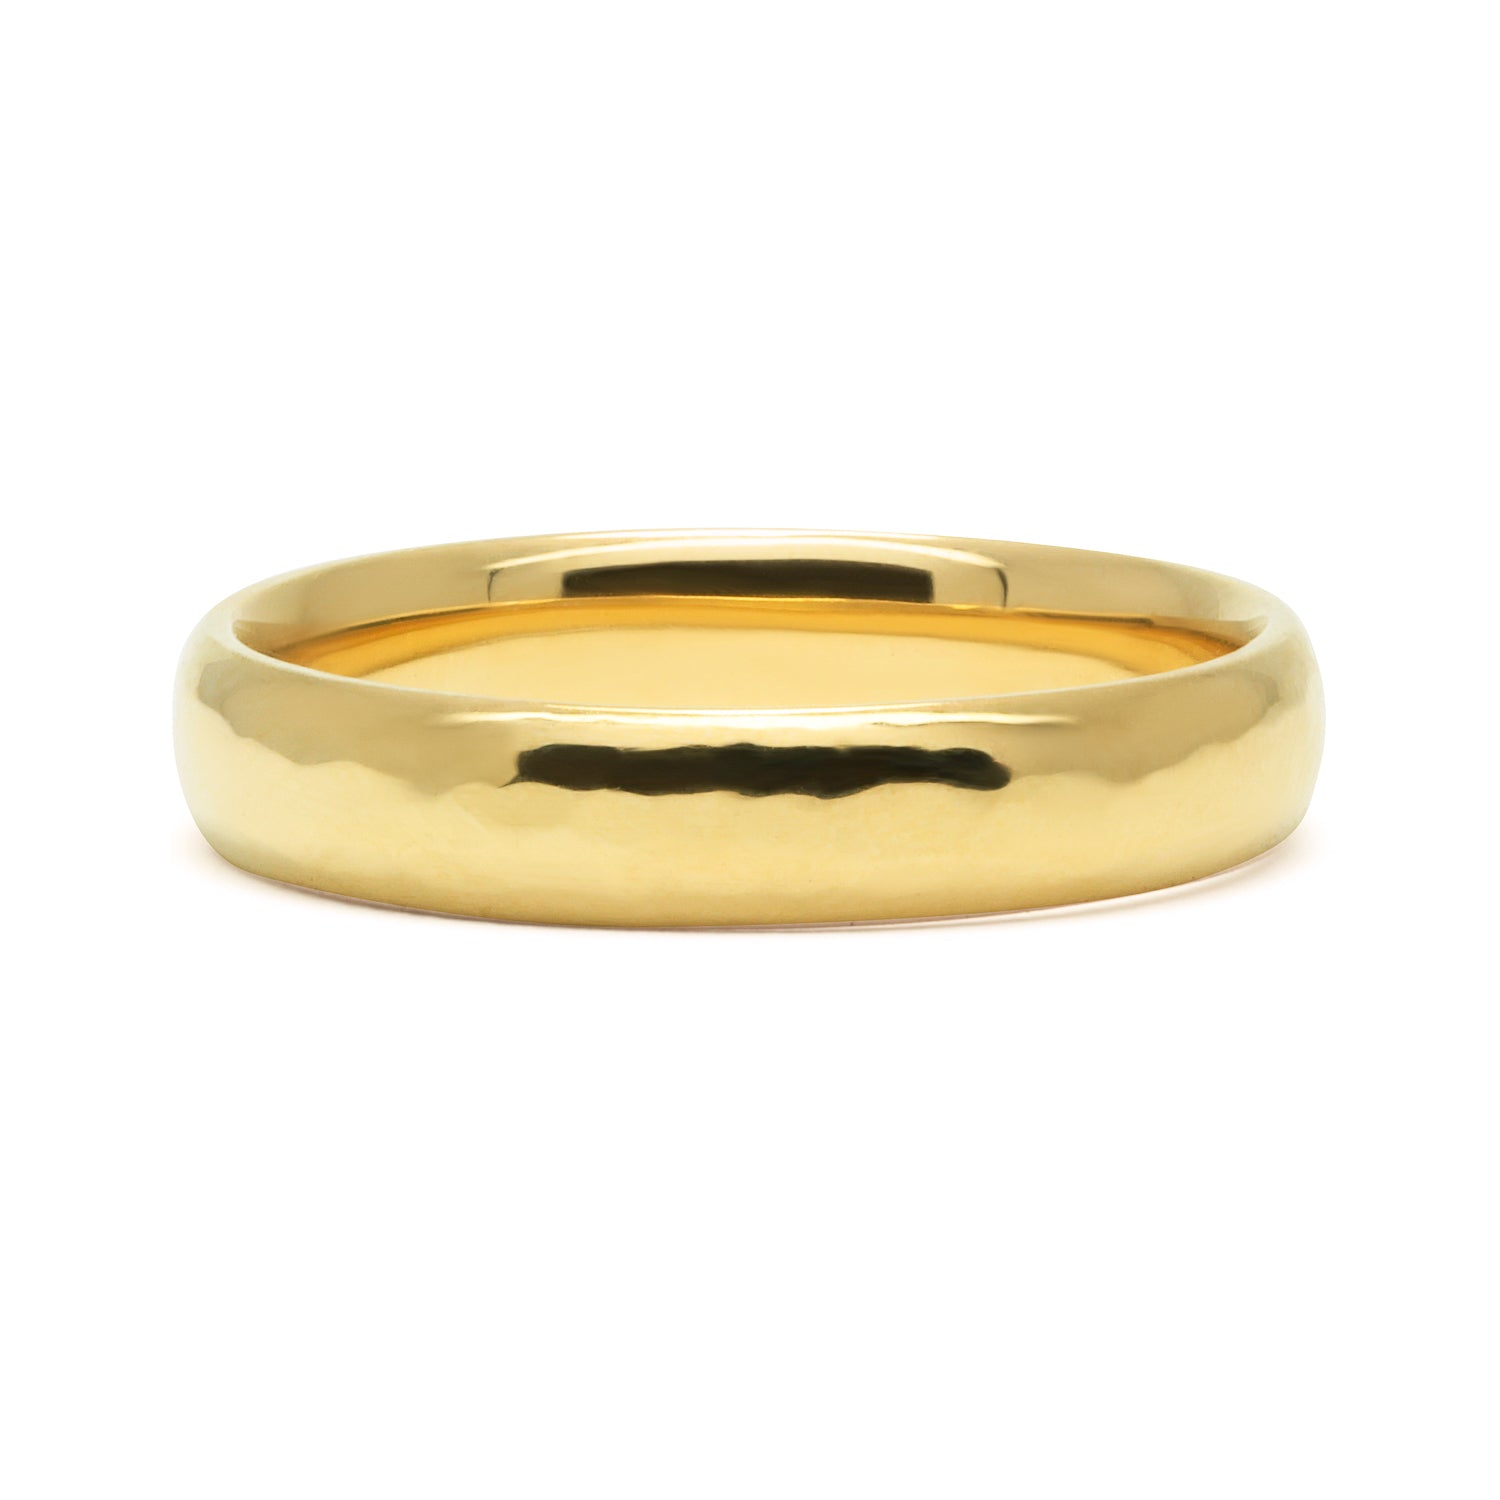 Court Soft Hammered Polished Ethical Gold Wedding Ring, Medium